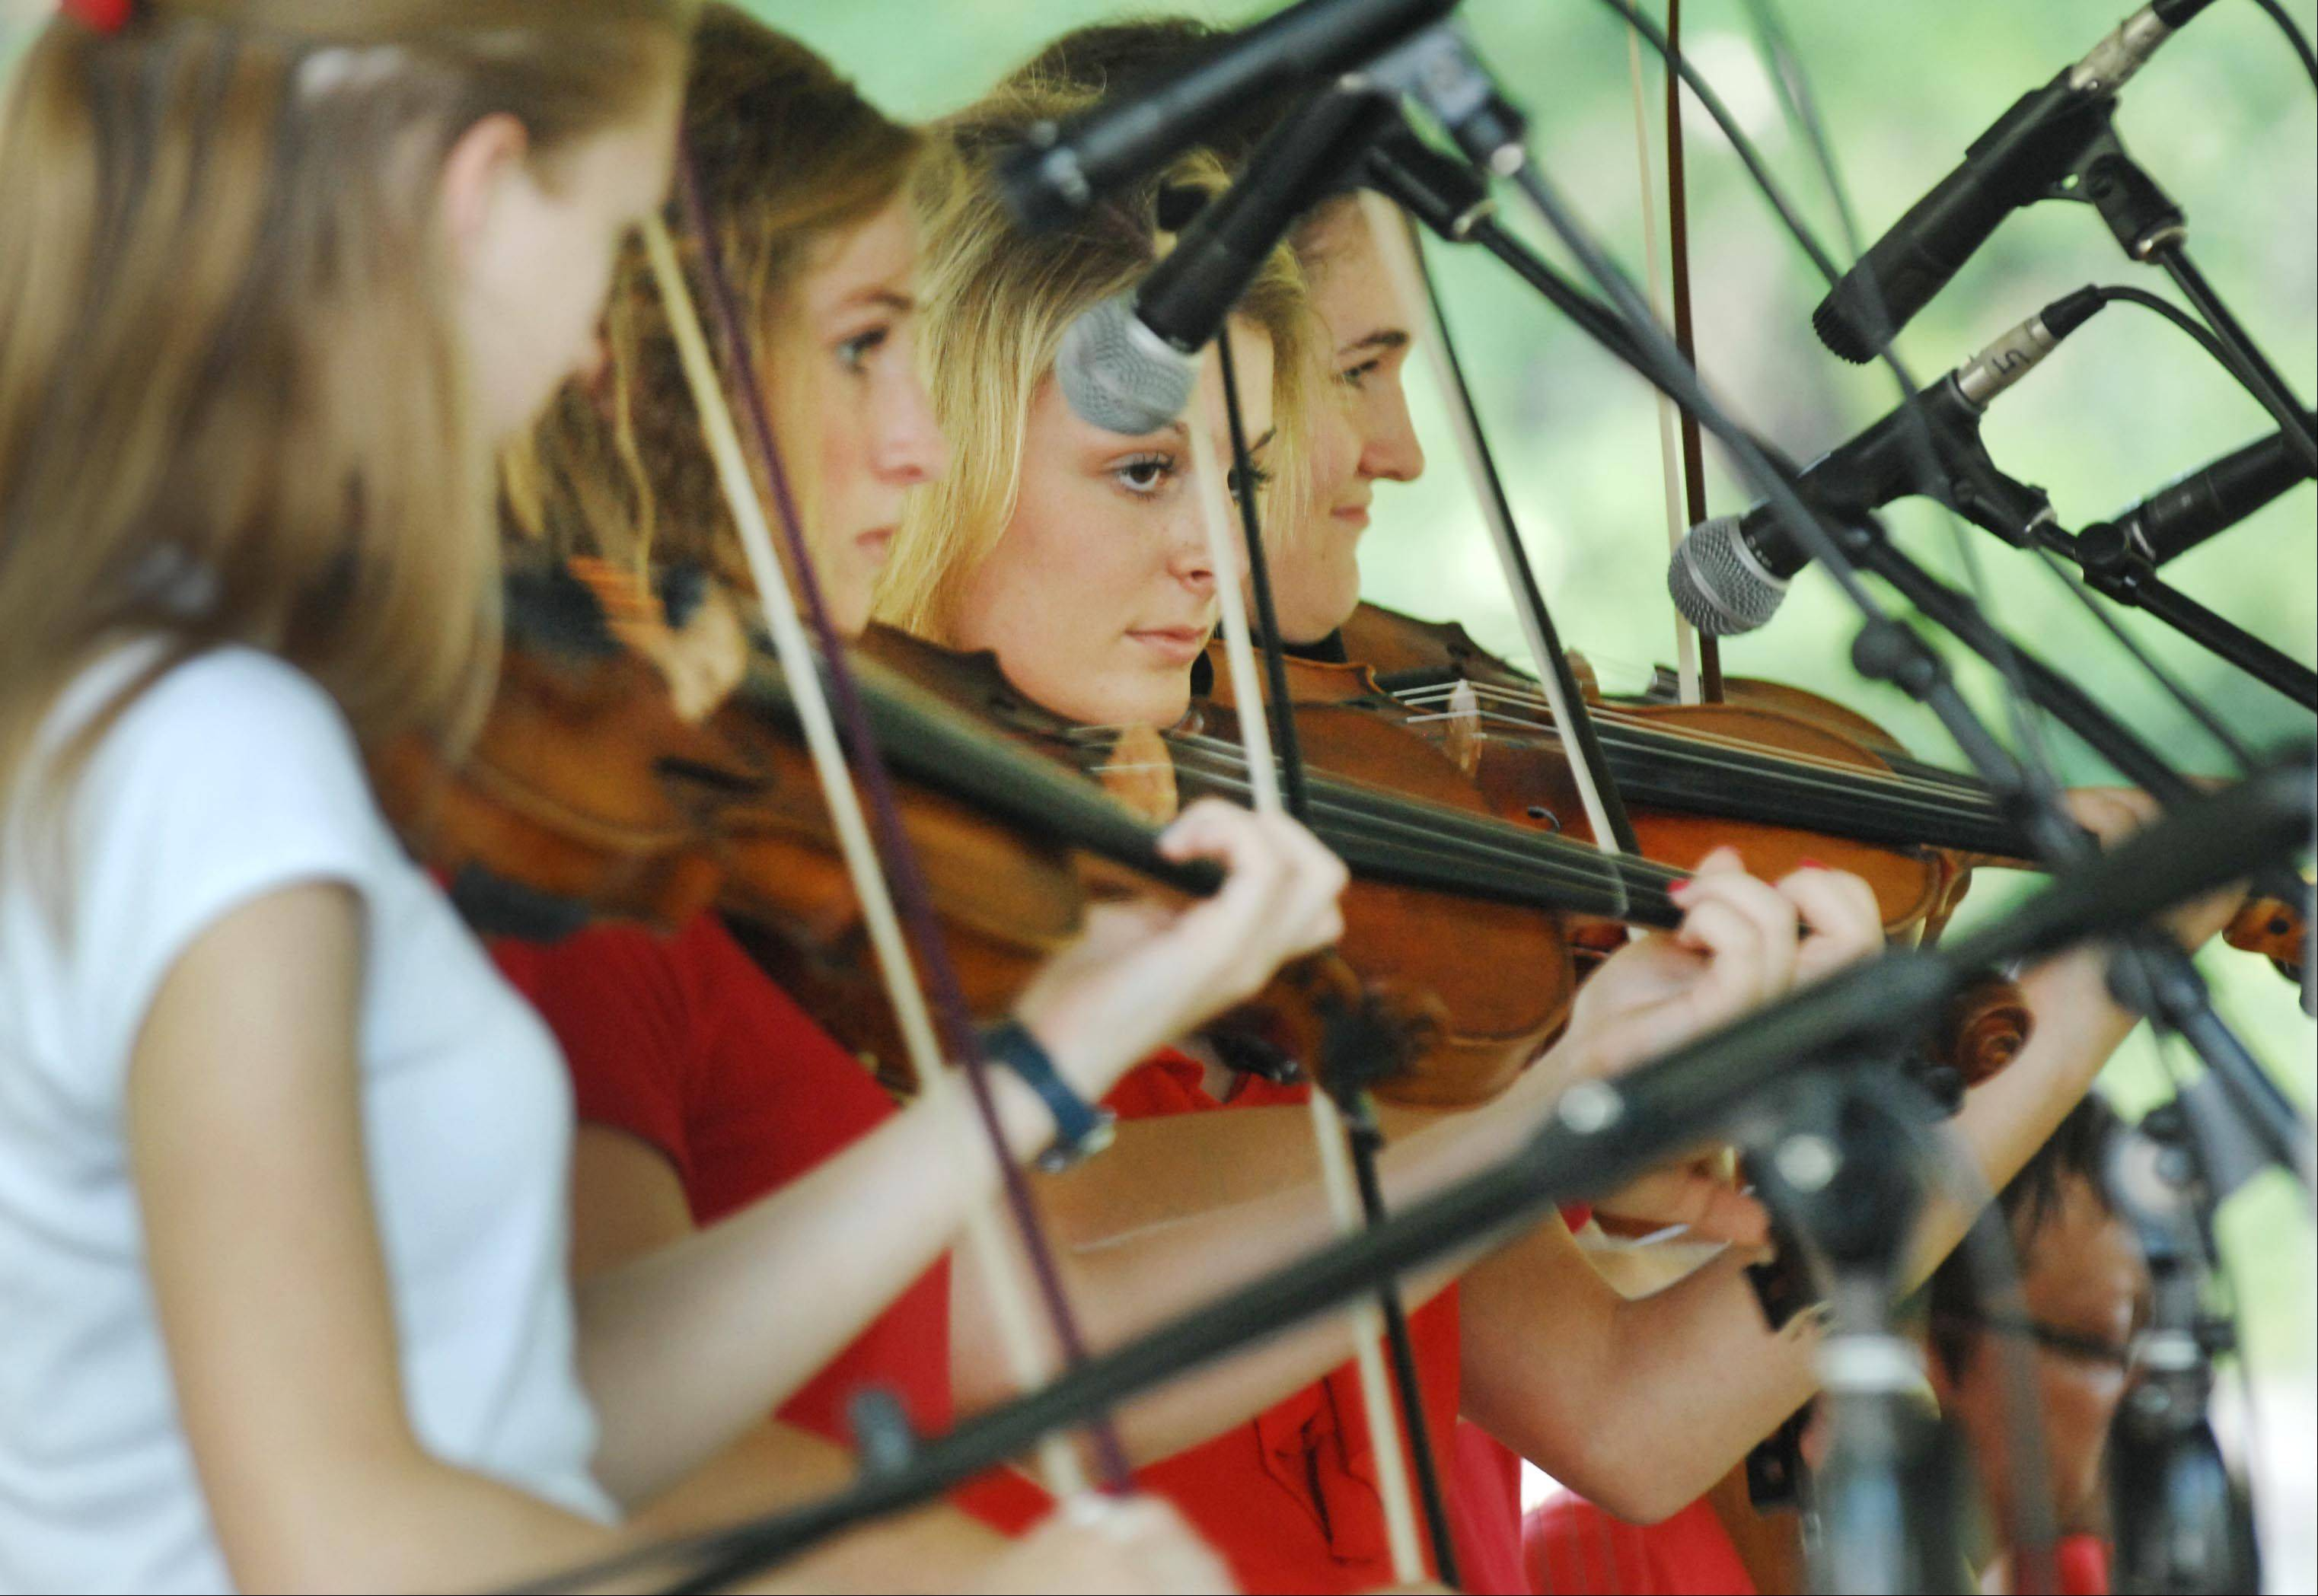 The Girls of Murphy Roache play fiddle together at the 36th Annual Fox Valley Folk Music & Storytelling Festival in Island Park in Geneva Monday.